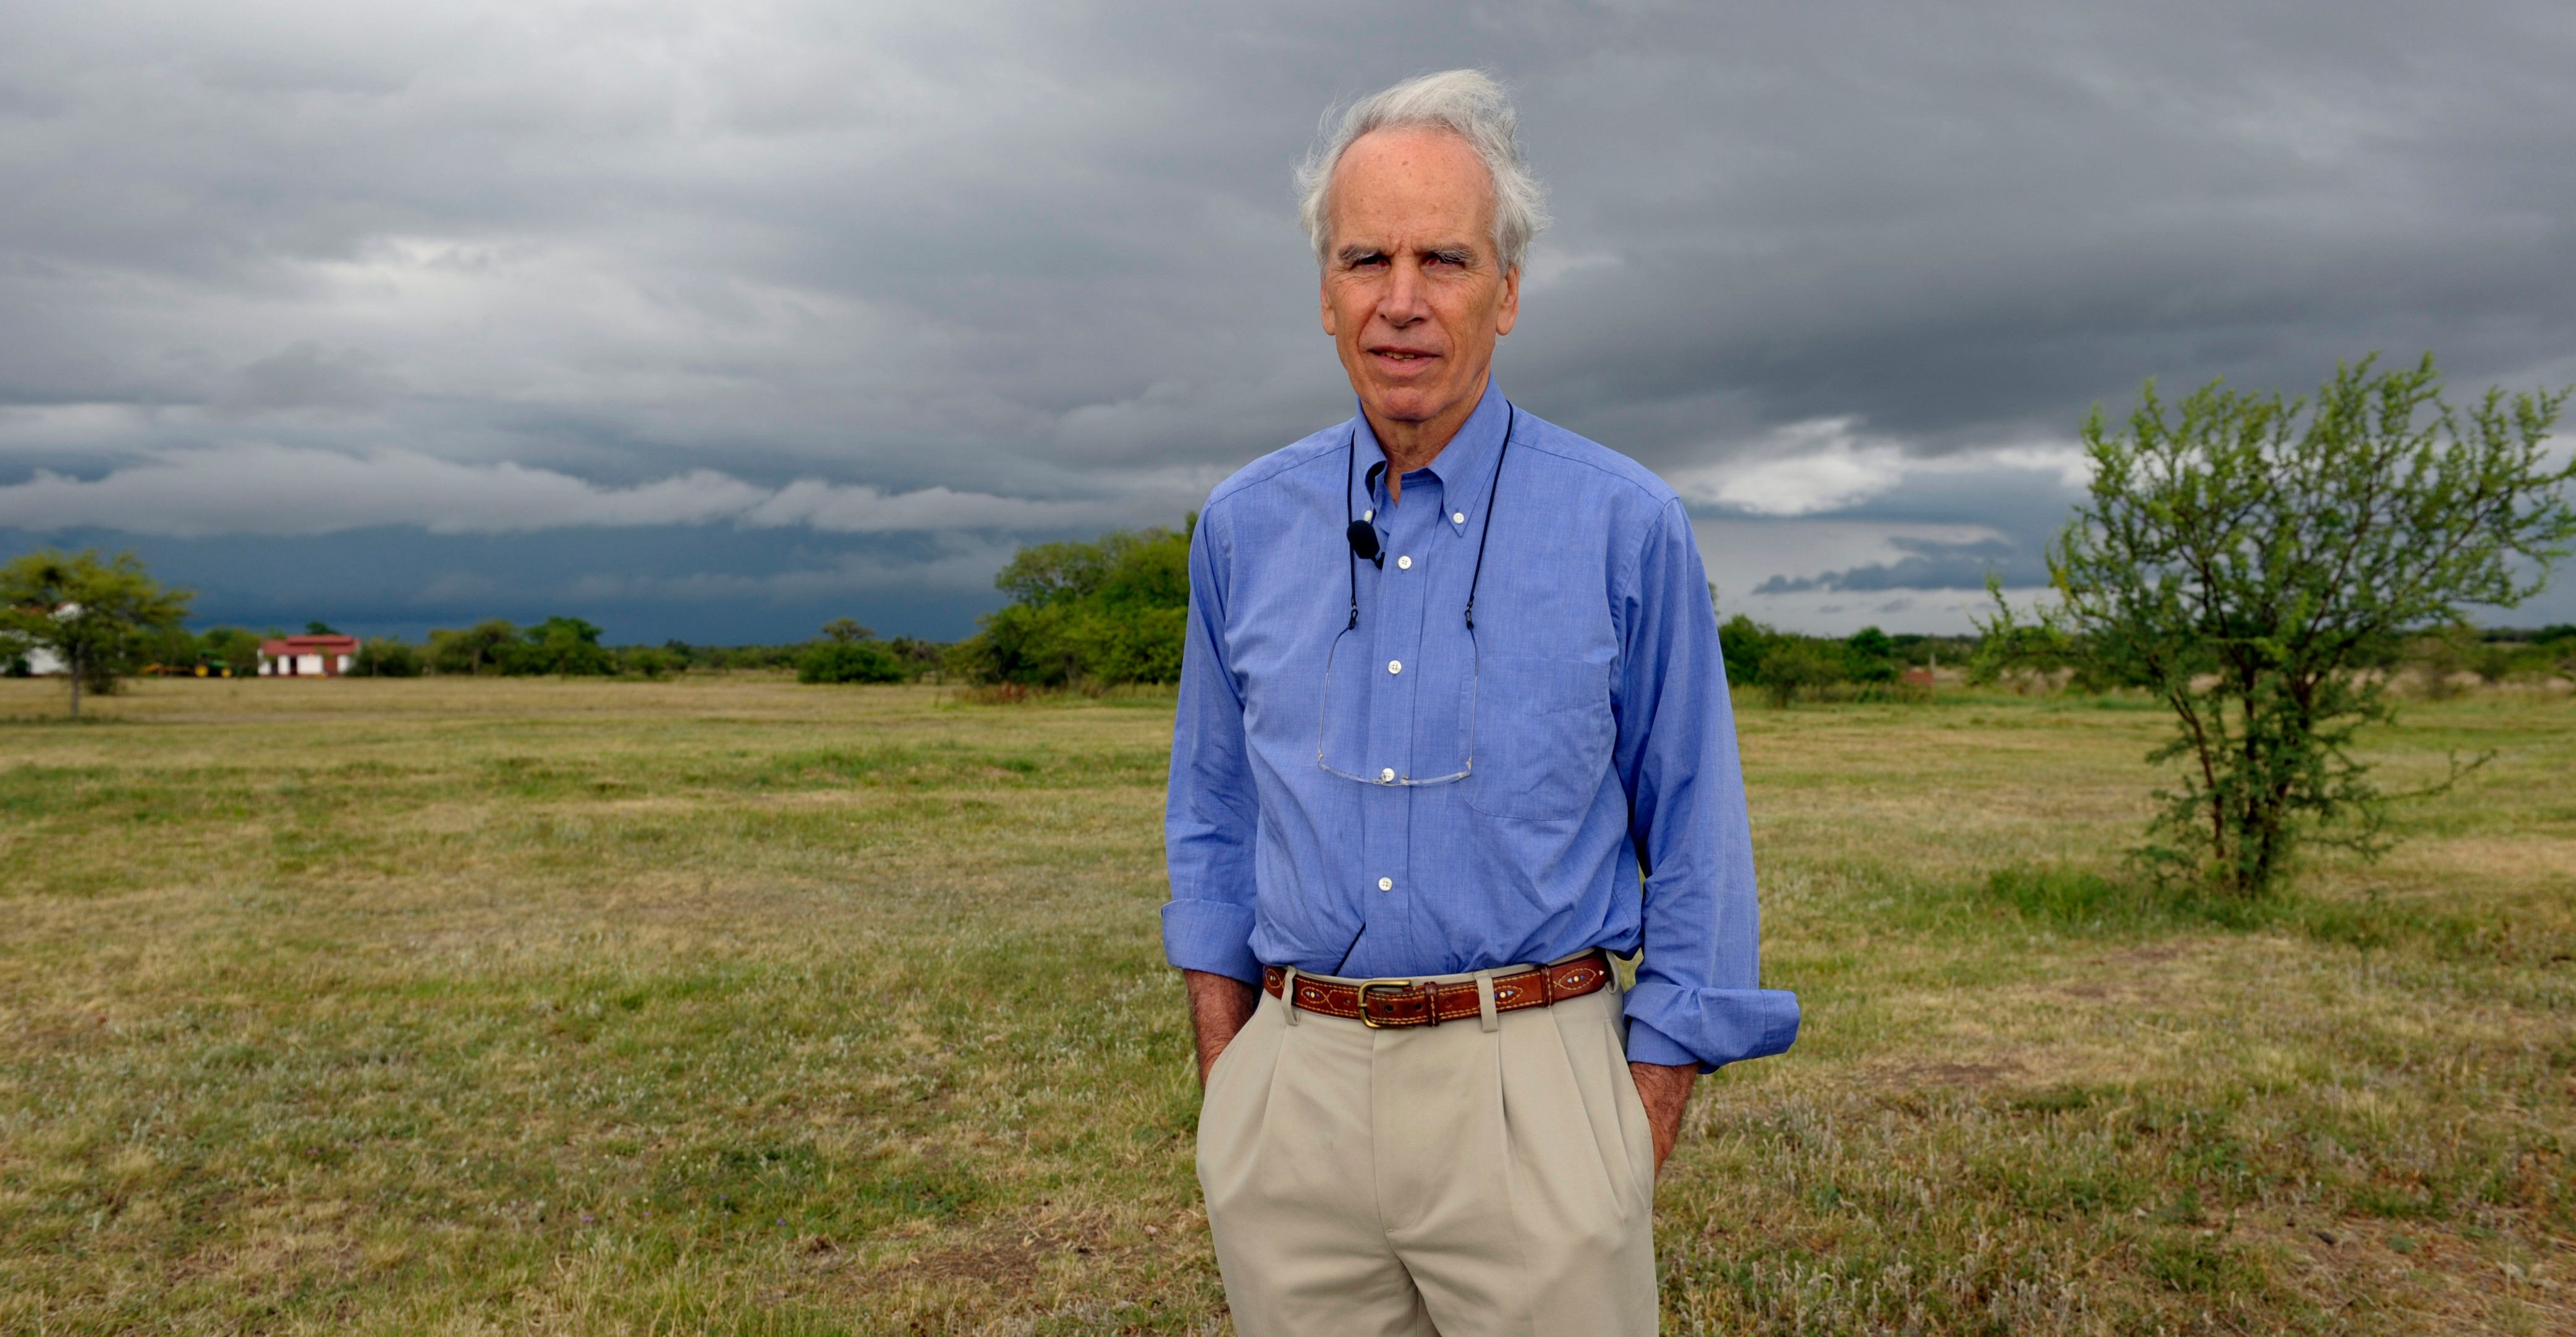 Douglas Tompkins, pictured in Argentina in 2009, died on Tuesday in a kayaking accident in Patagonia.